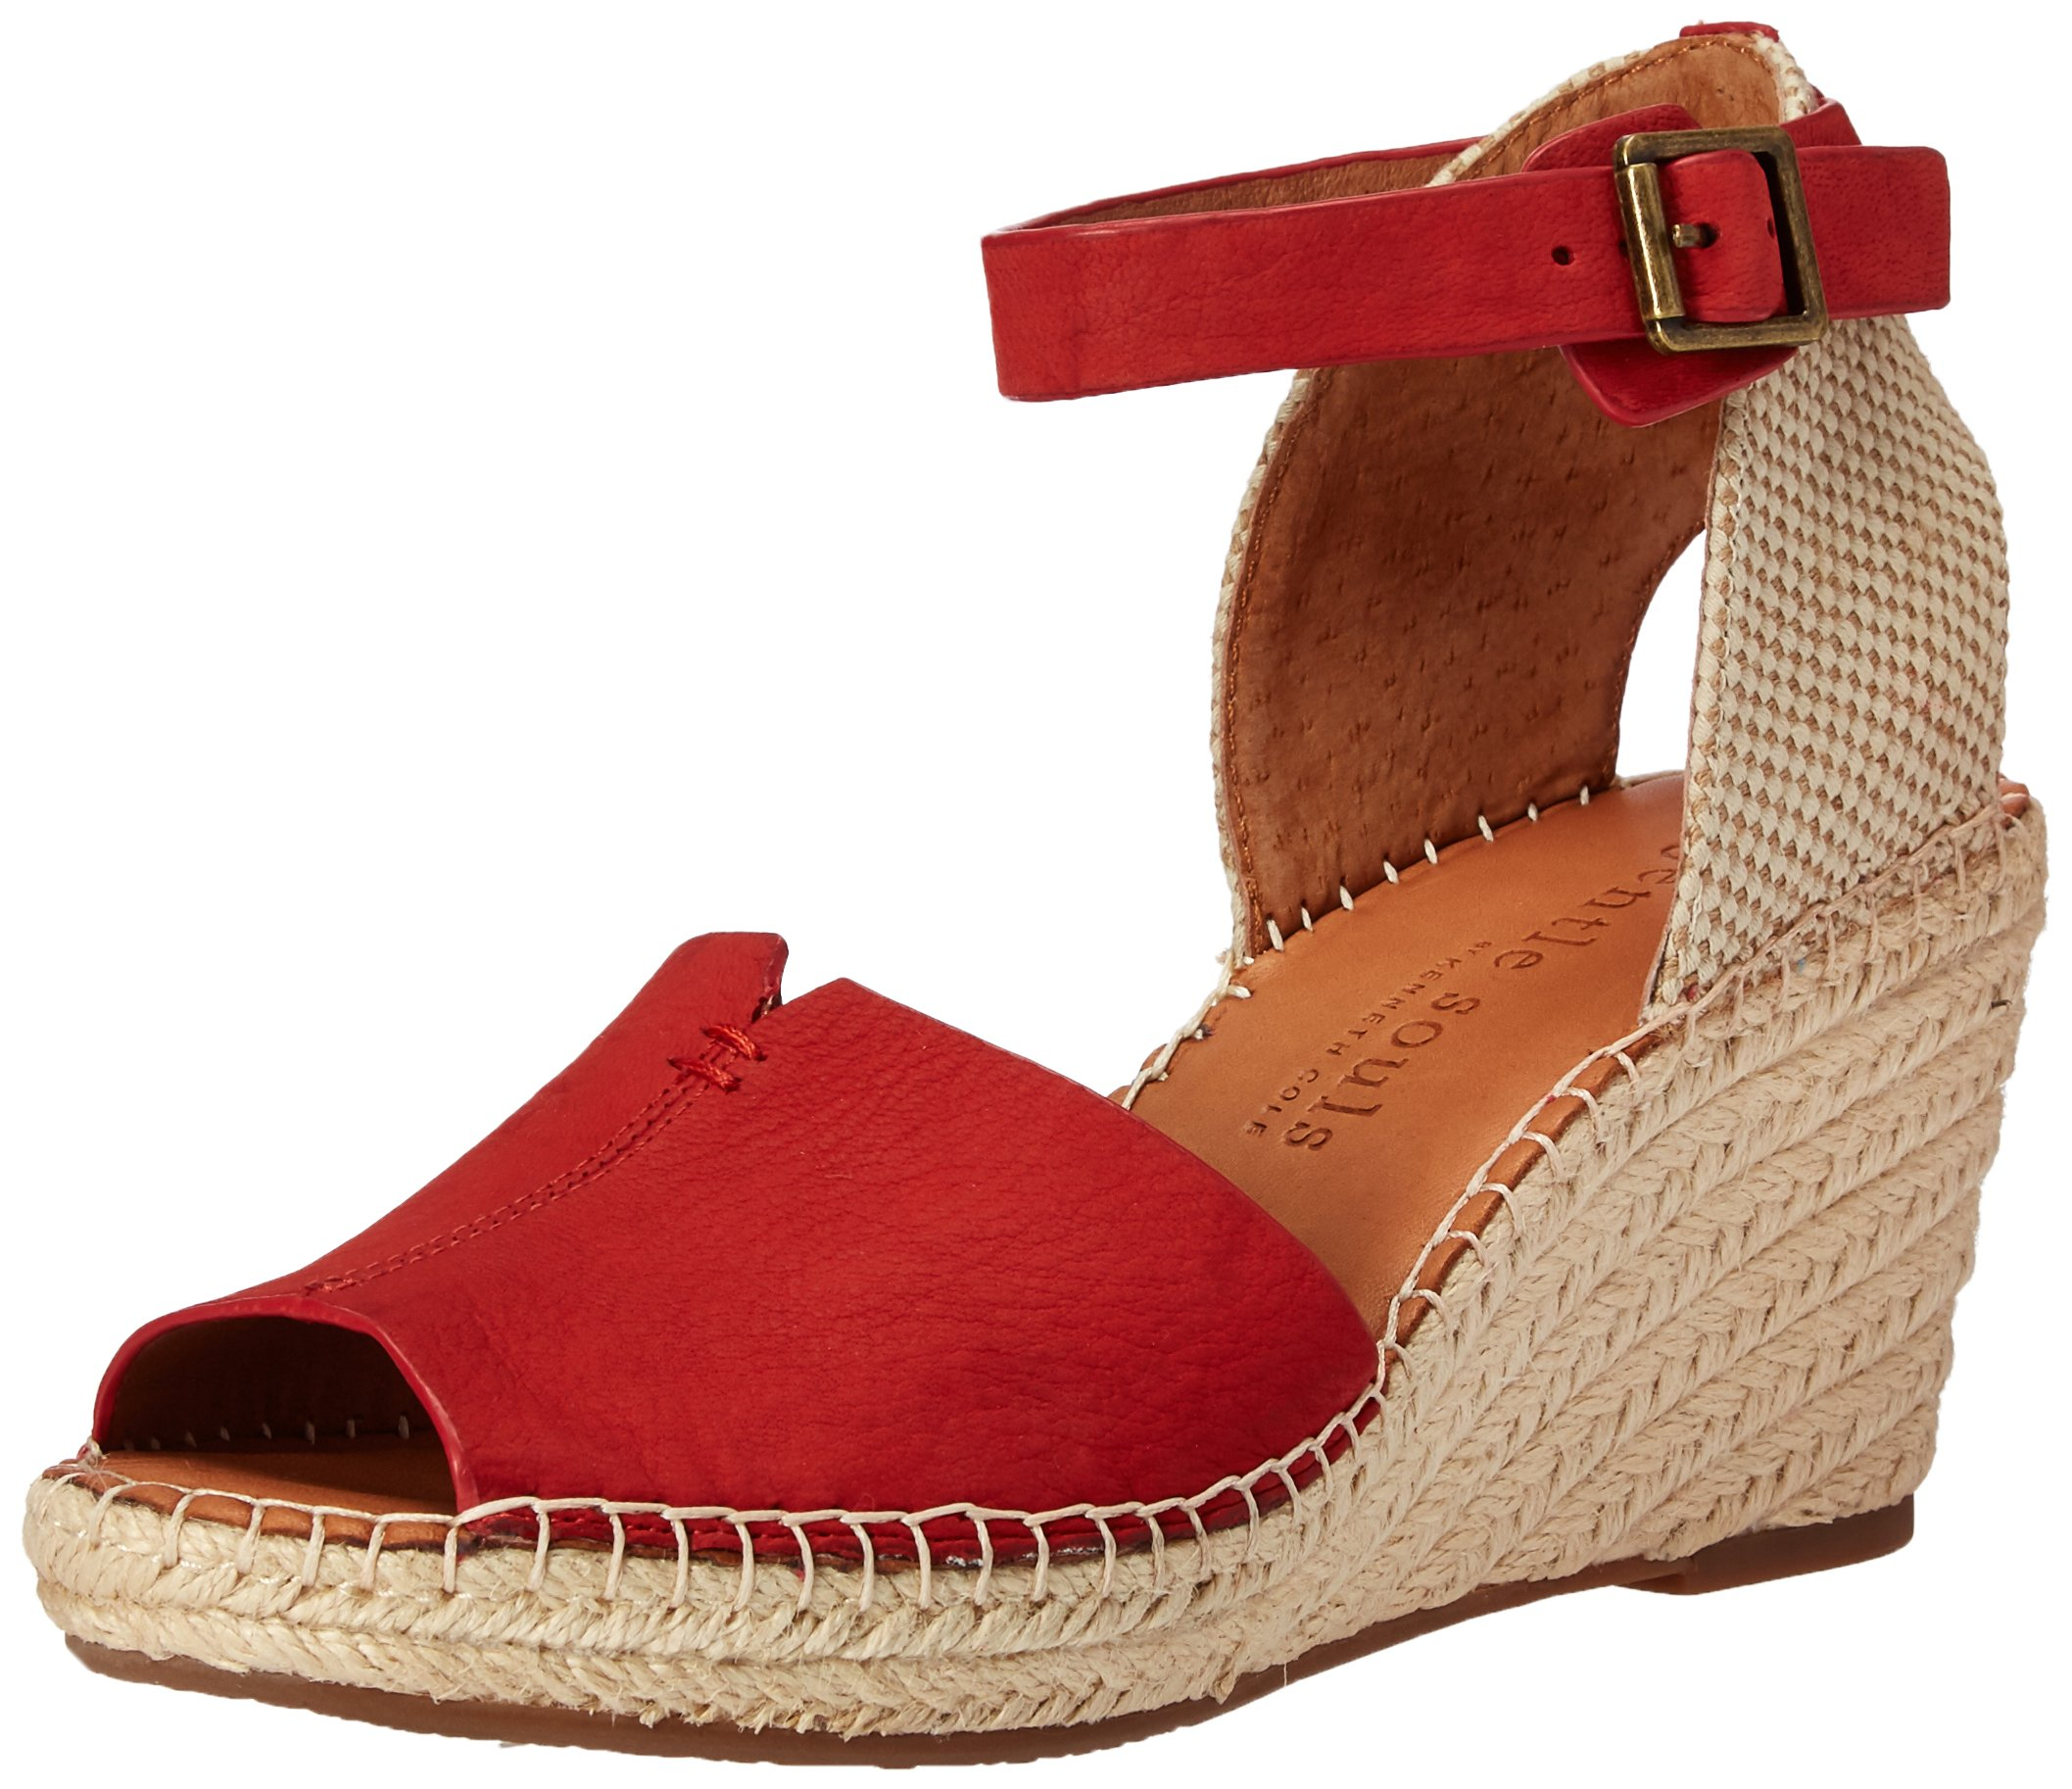 Gentle Souls Women's Charli Espadrille Wedge Sandal, Red, 10 M US